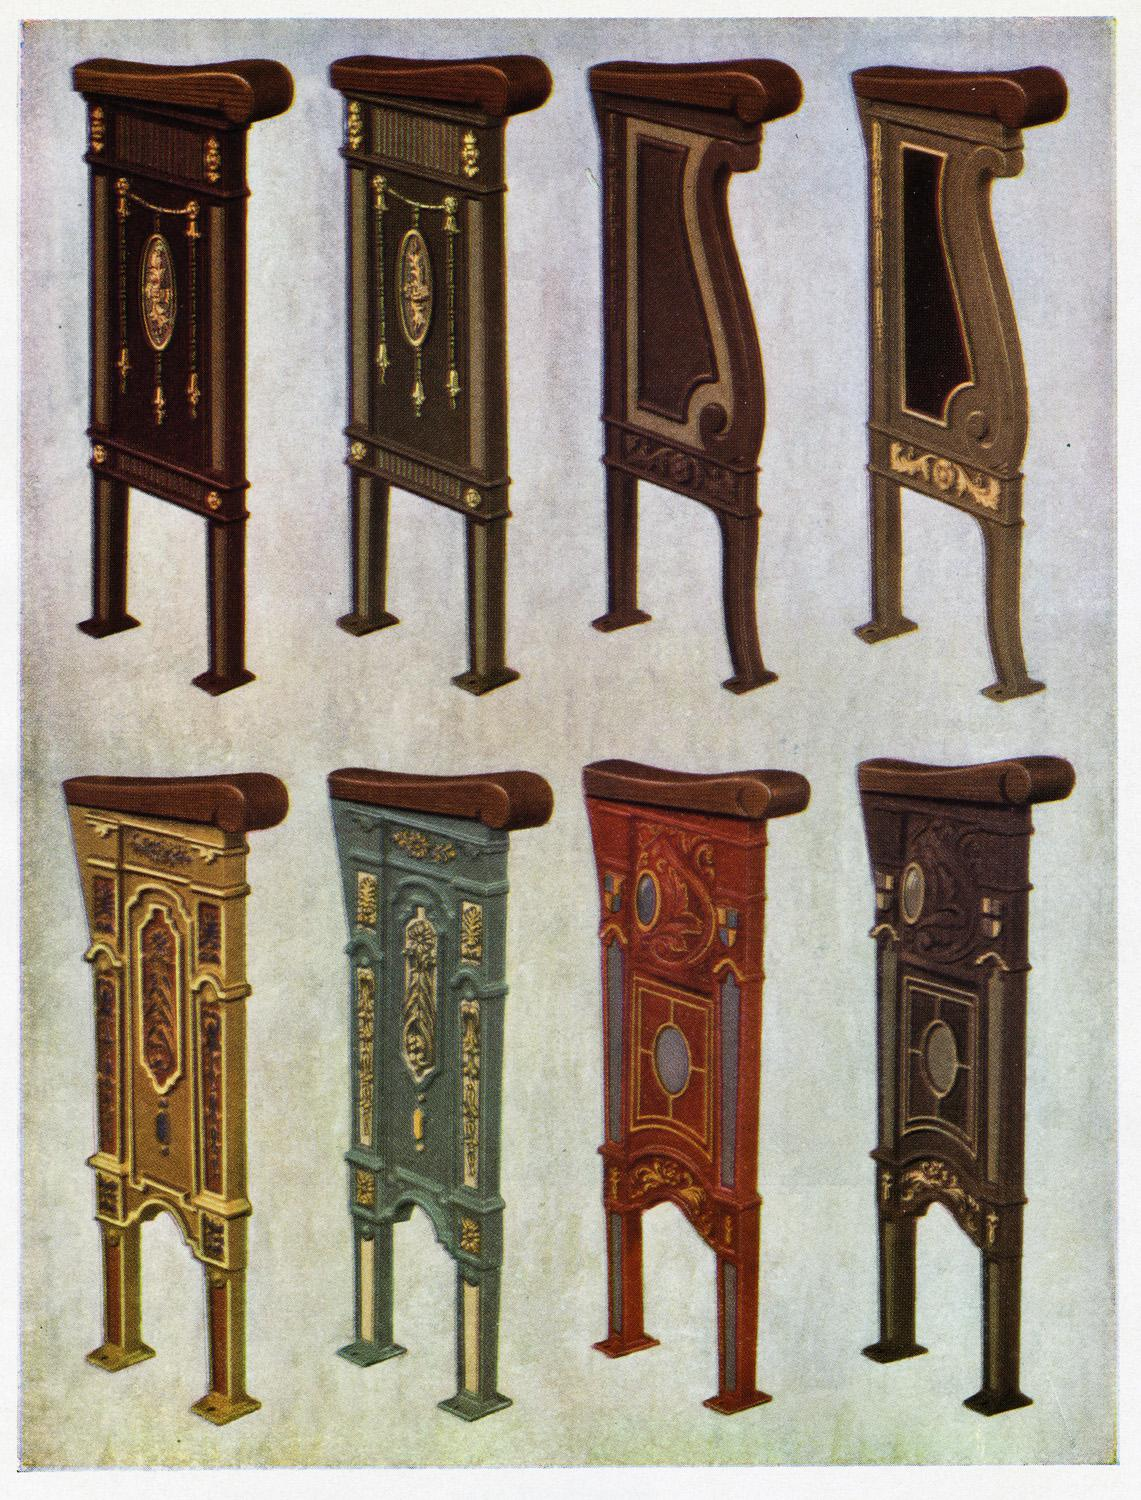 Irwin Seating Co. Catalog, Theater Seat End Panels